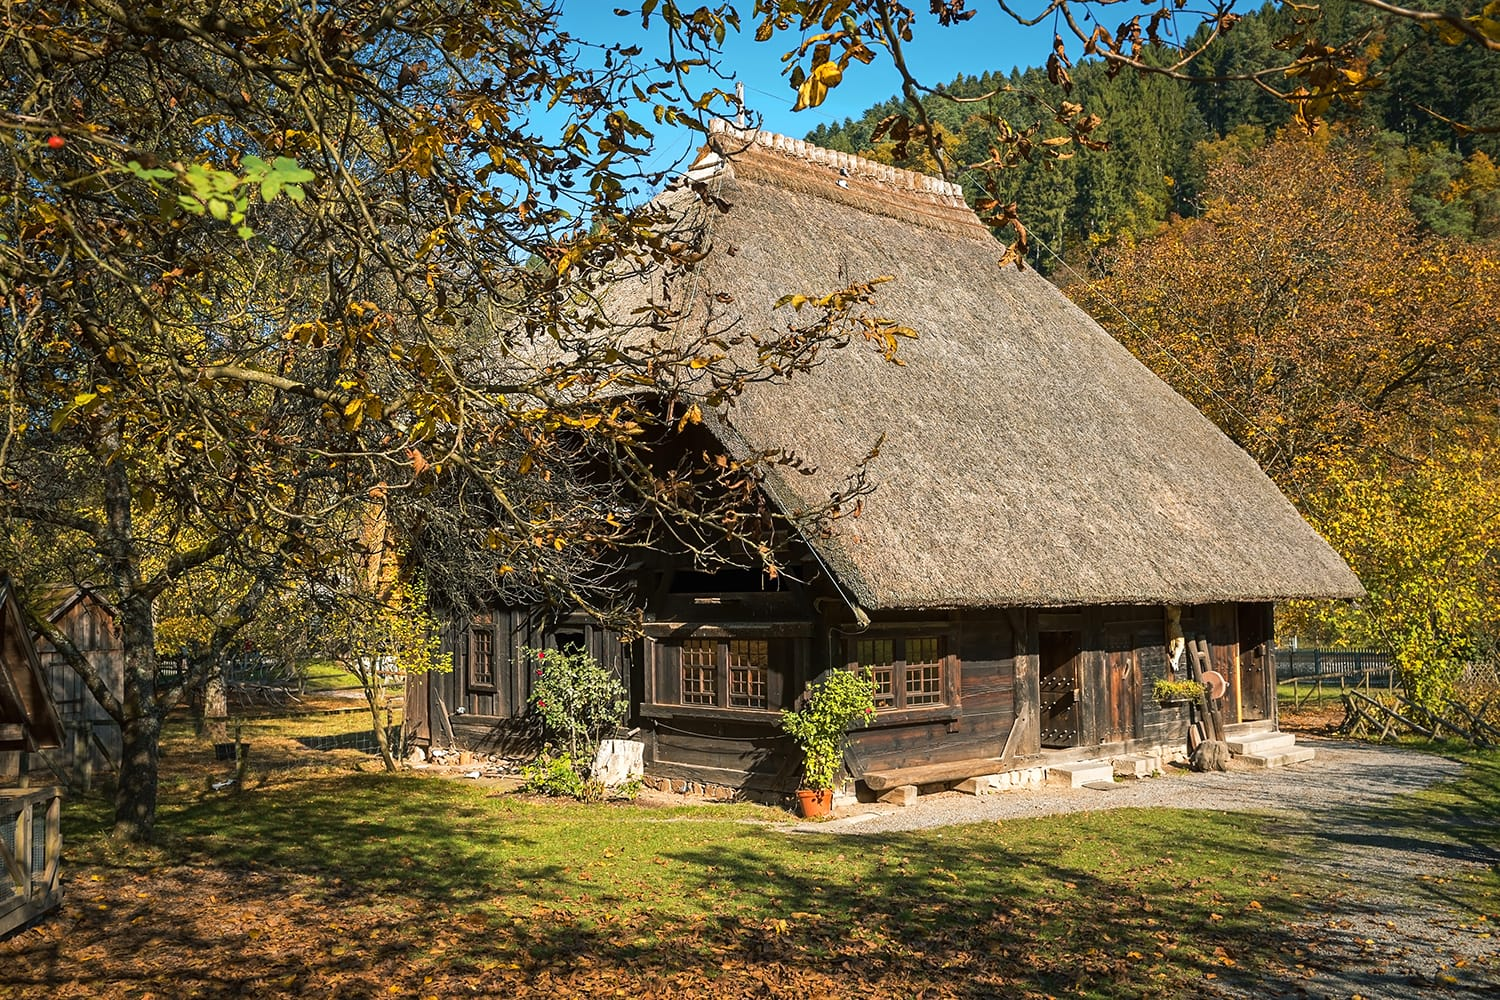 One of the historic farmhouse in the Black Forest Open-Air Museum in autumn